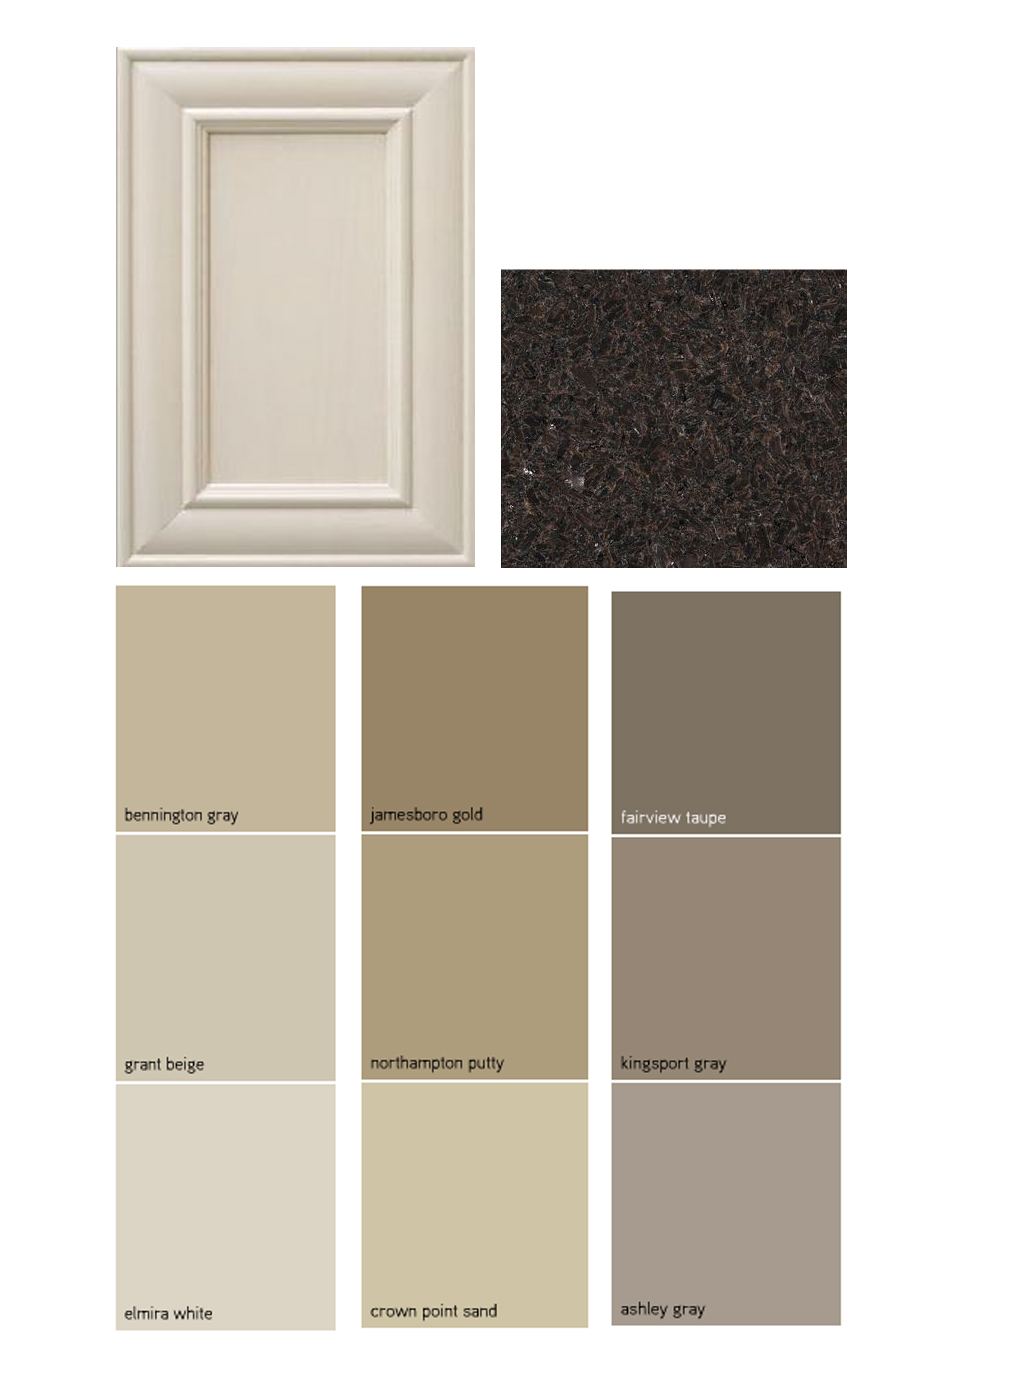 White Paint Colors For Kitchen Cabinets Carmens Corner Still Looking For The Right Paint Color